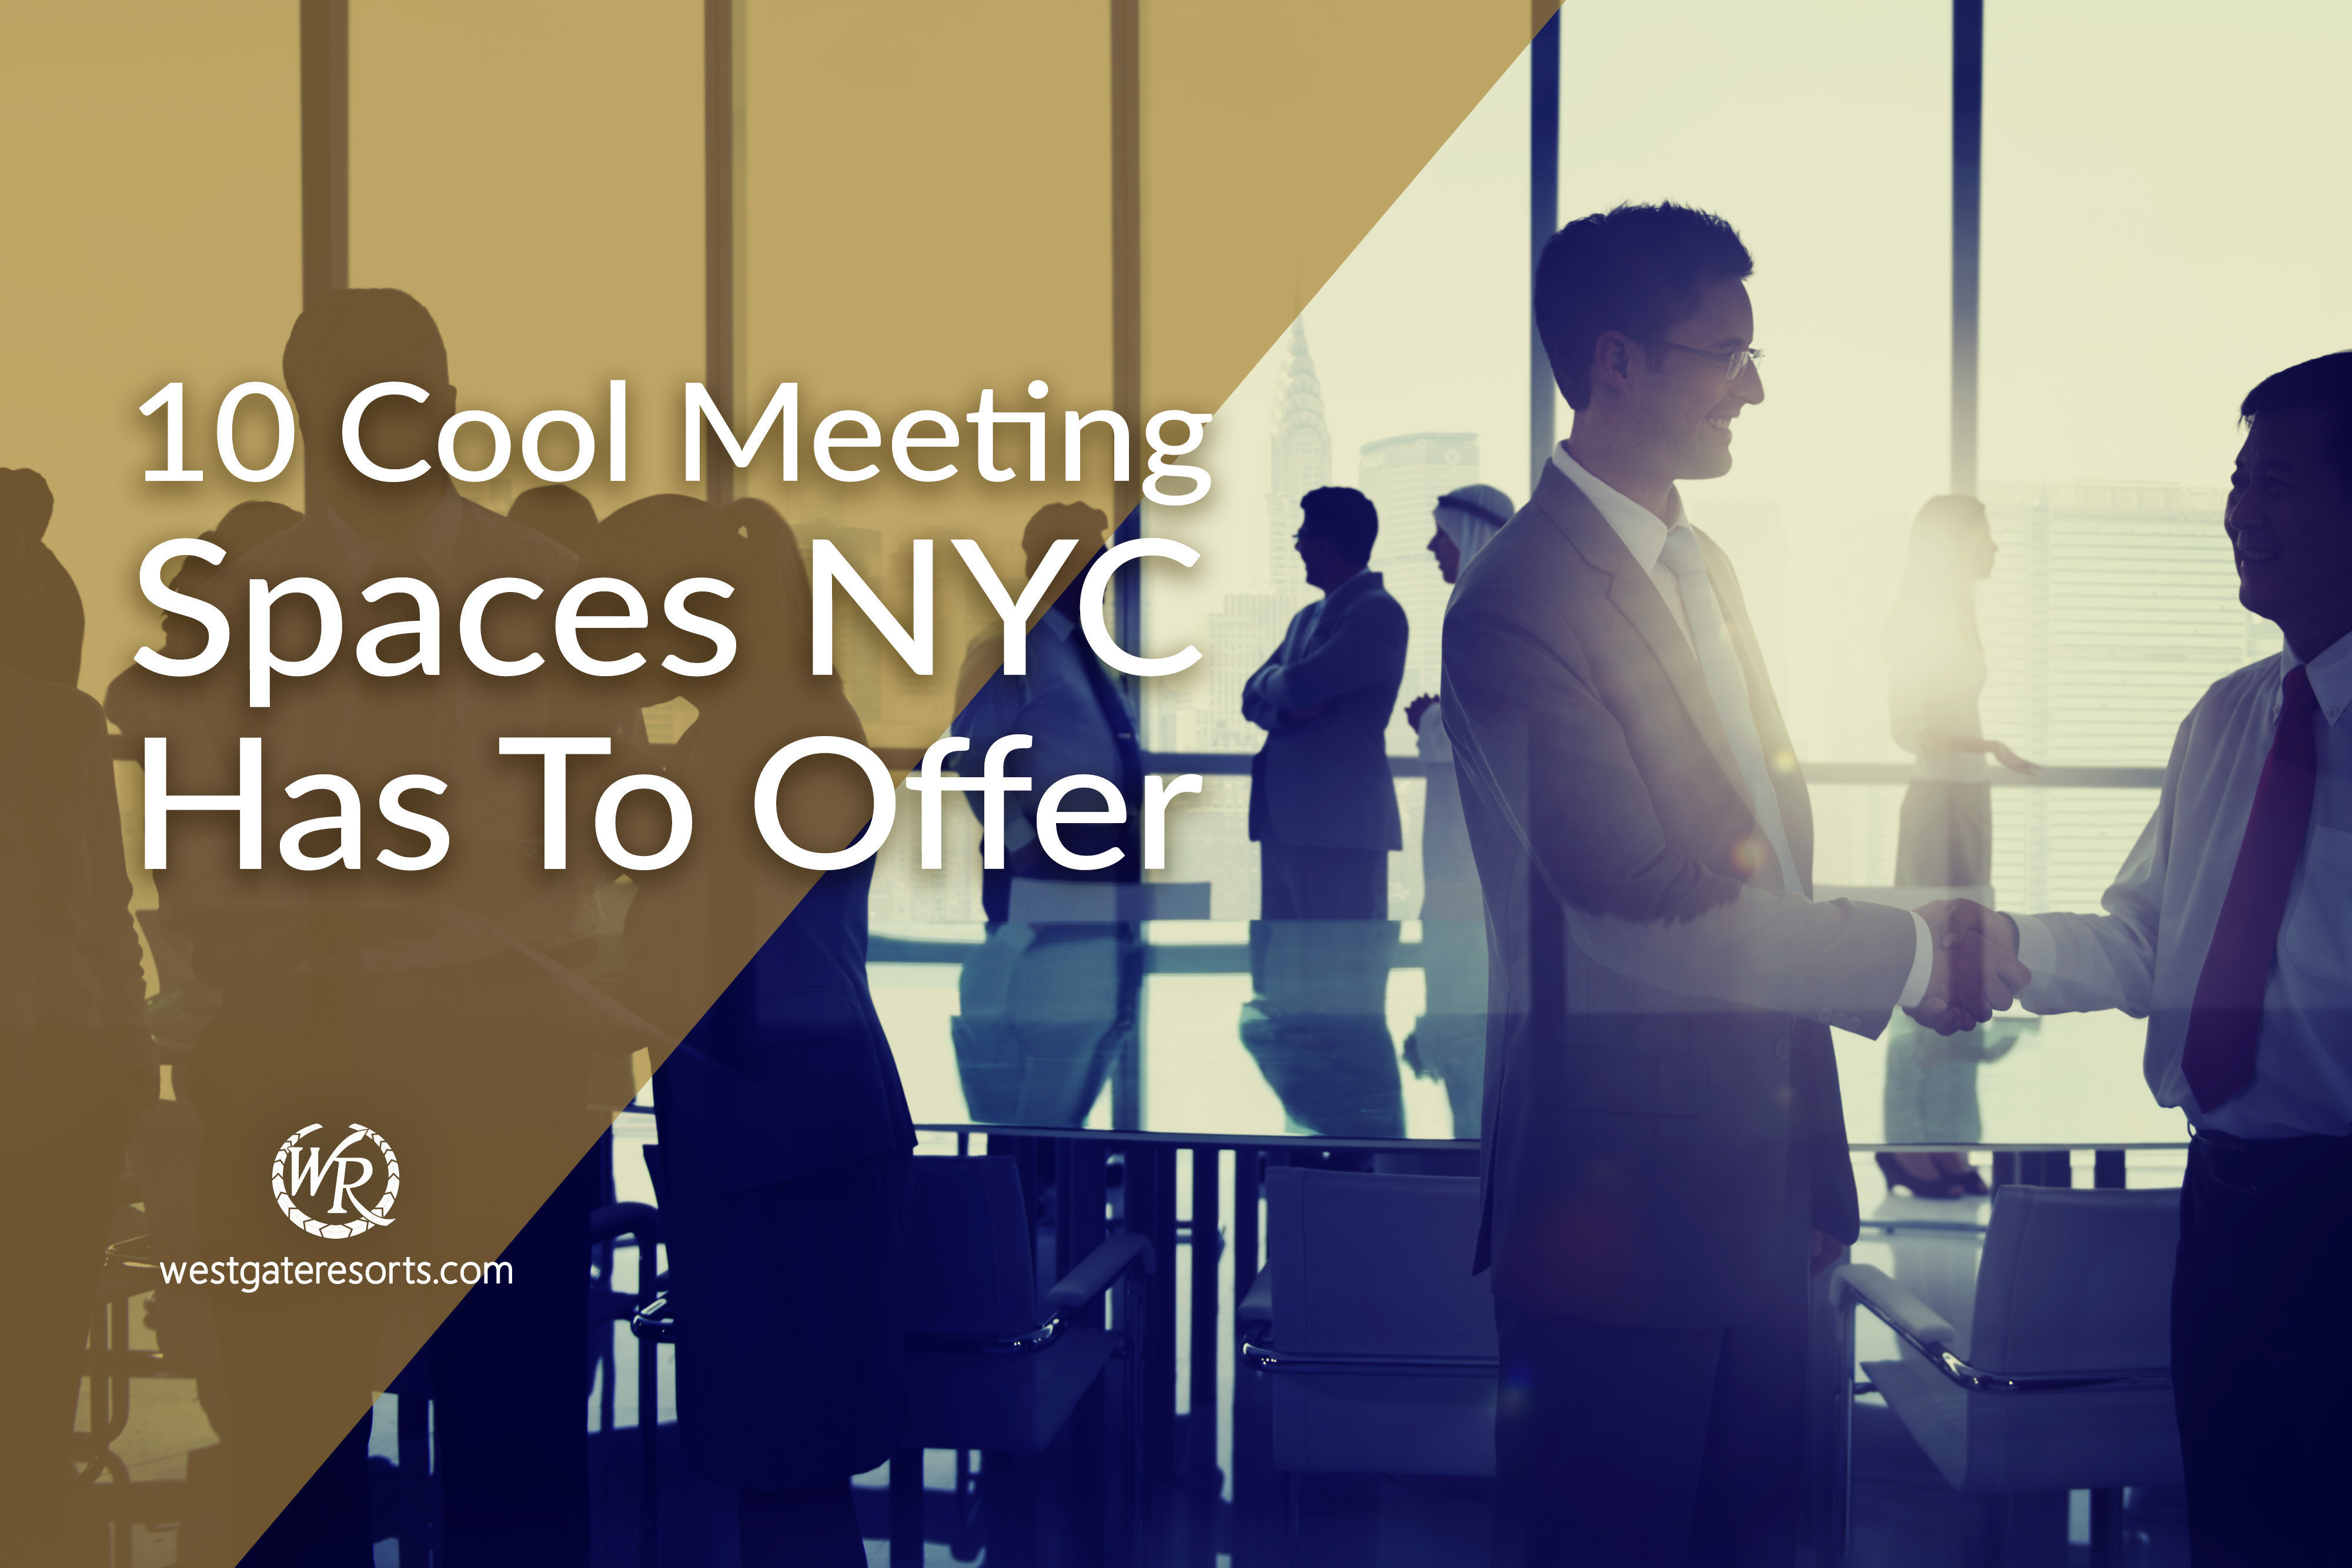 10 Cool Meeting Spaces NYC Has To Offer (UPDATED 2021)